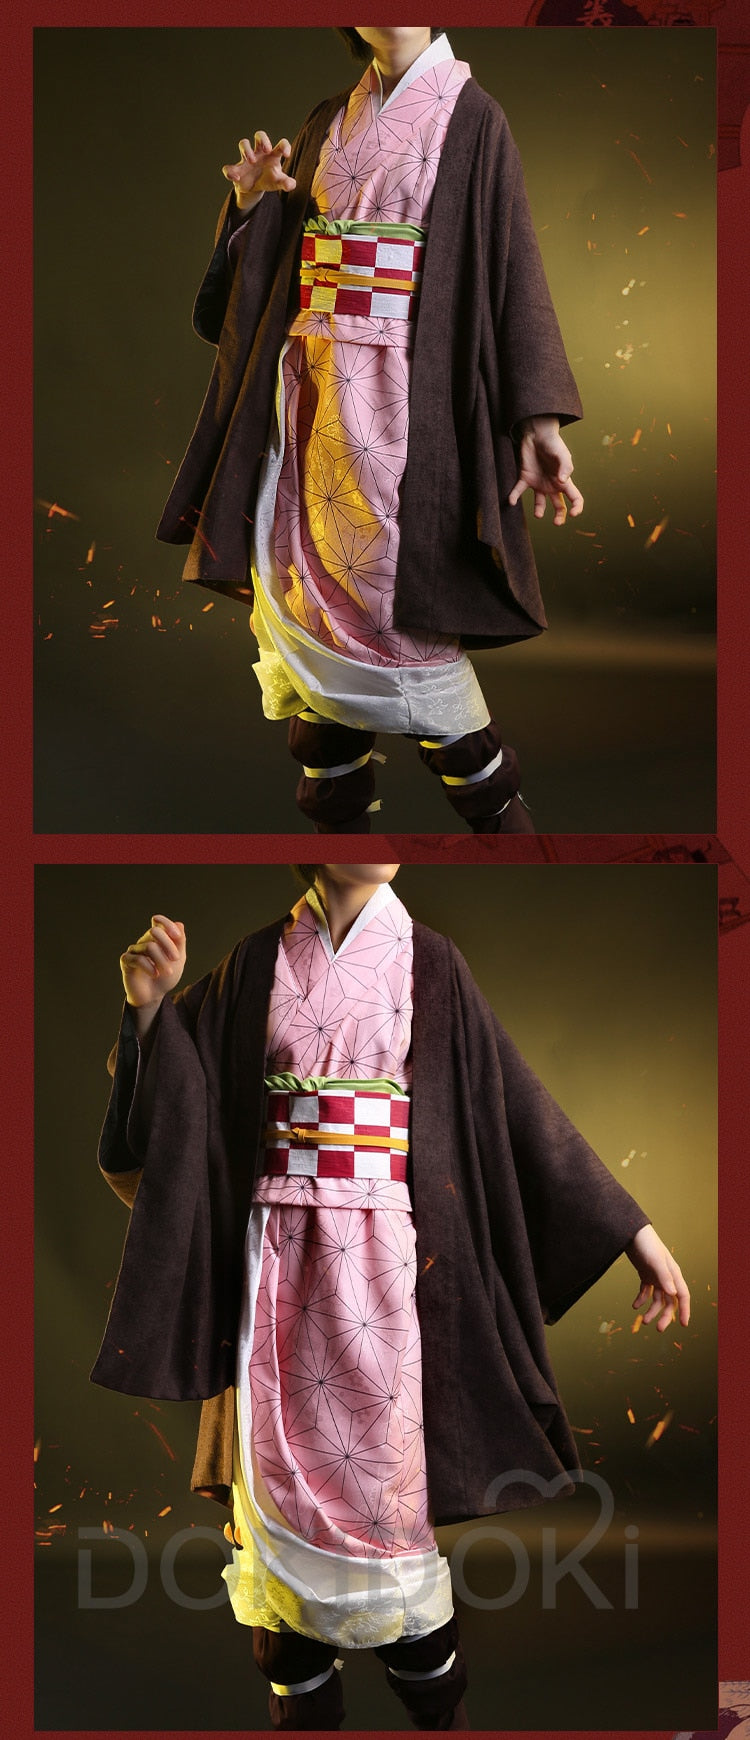 DokiDoki-SR Anime Demon Slayer: Kimetsu no Yaiba Cosplay Costume Kamado Nezuko Cosplay Anime Kimetsu no Yaiba Costume Women